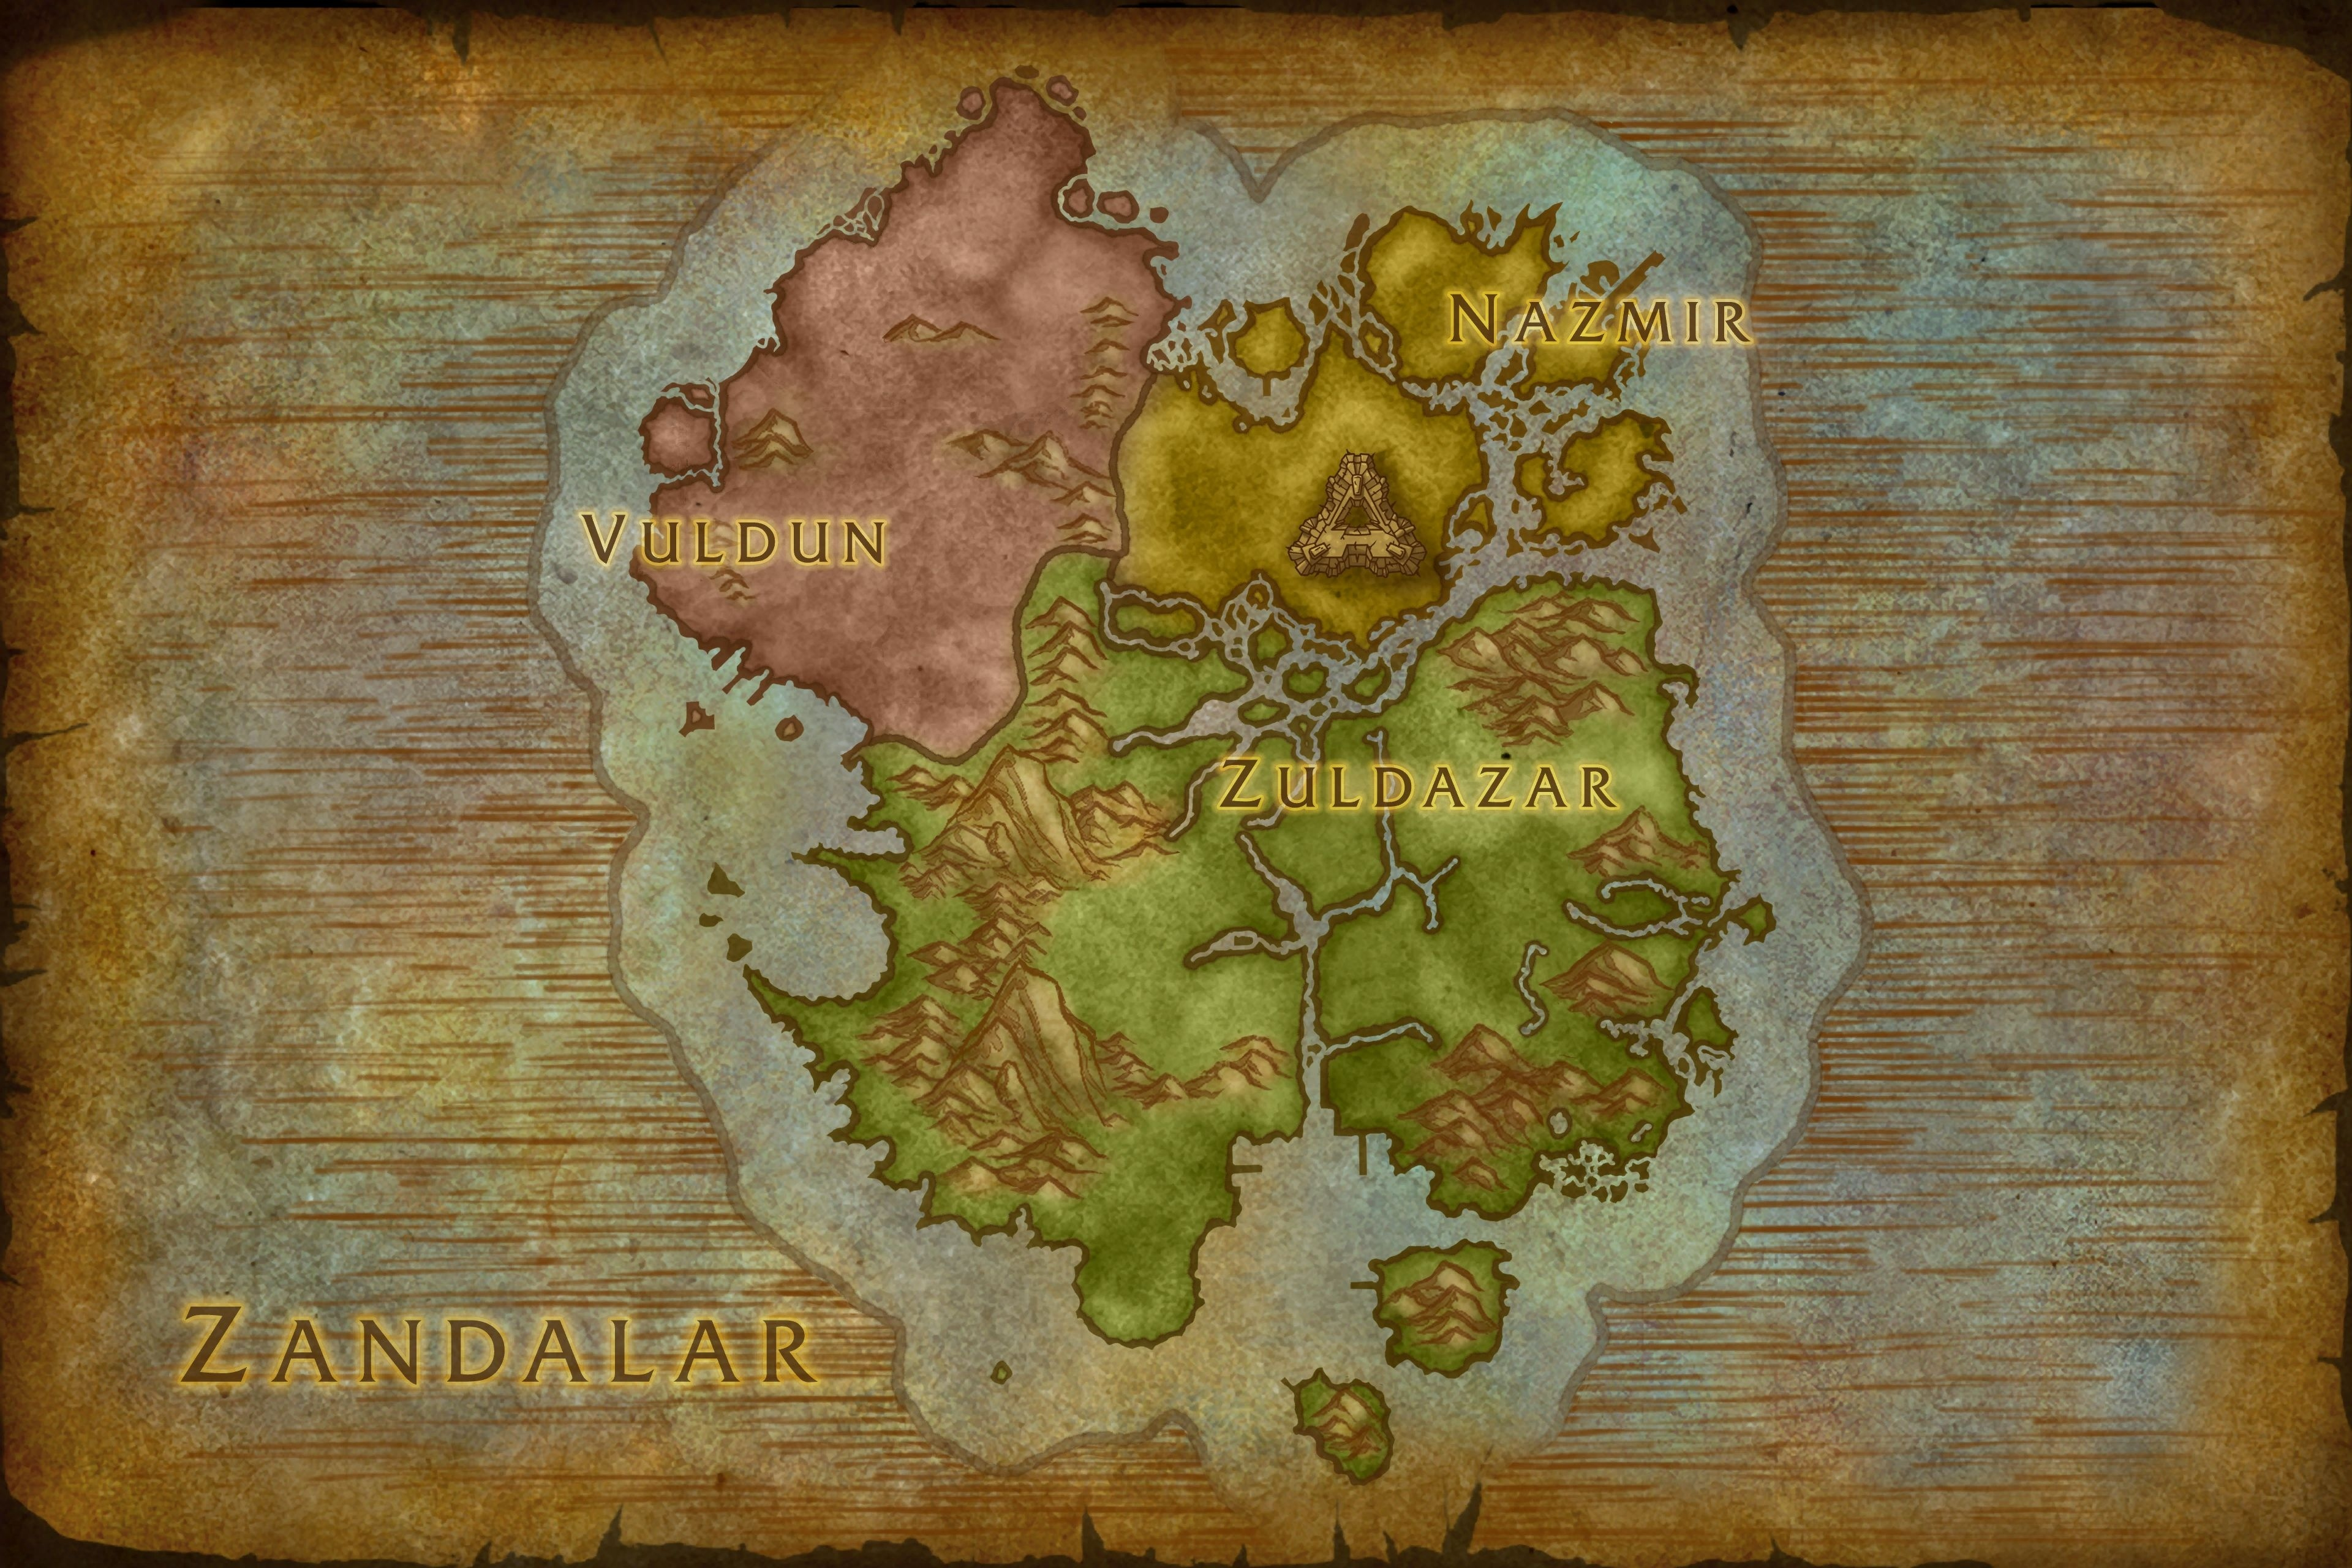 Carte de Zandalar dans Battle for Azeroth